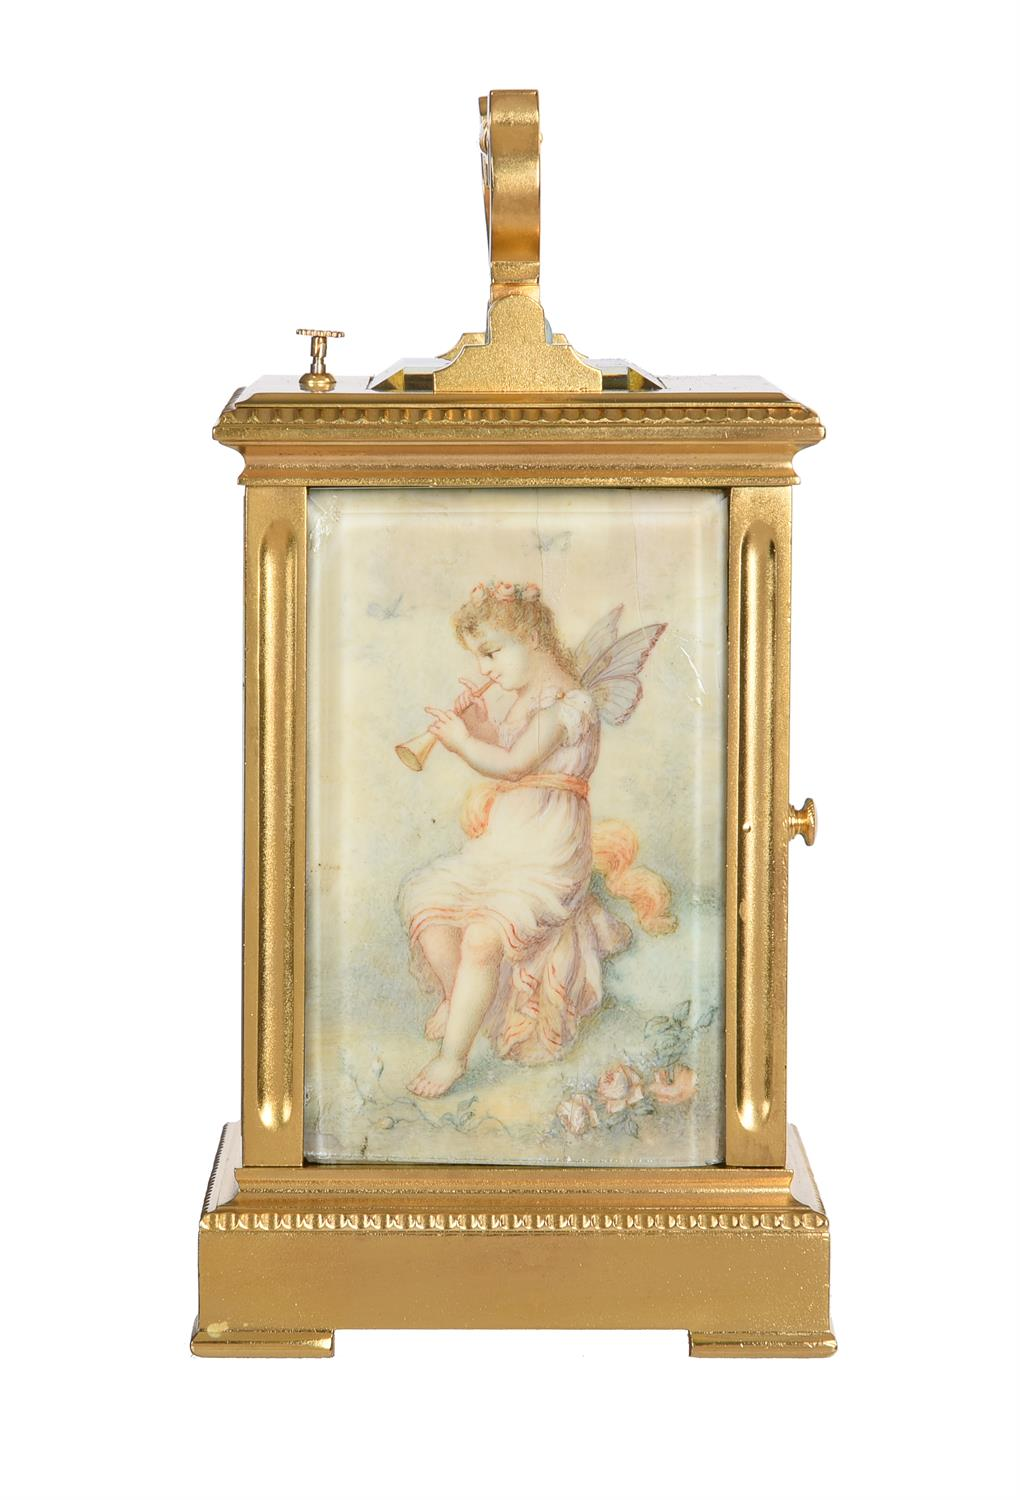 Y A French gilt brass carriage clock with painted ivory panels and push-button repeat - Image 4 of 5